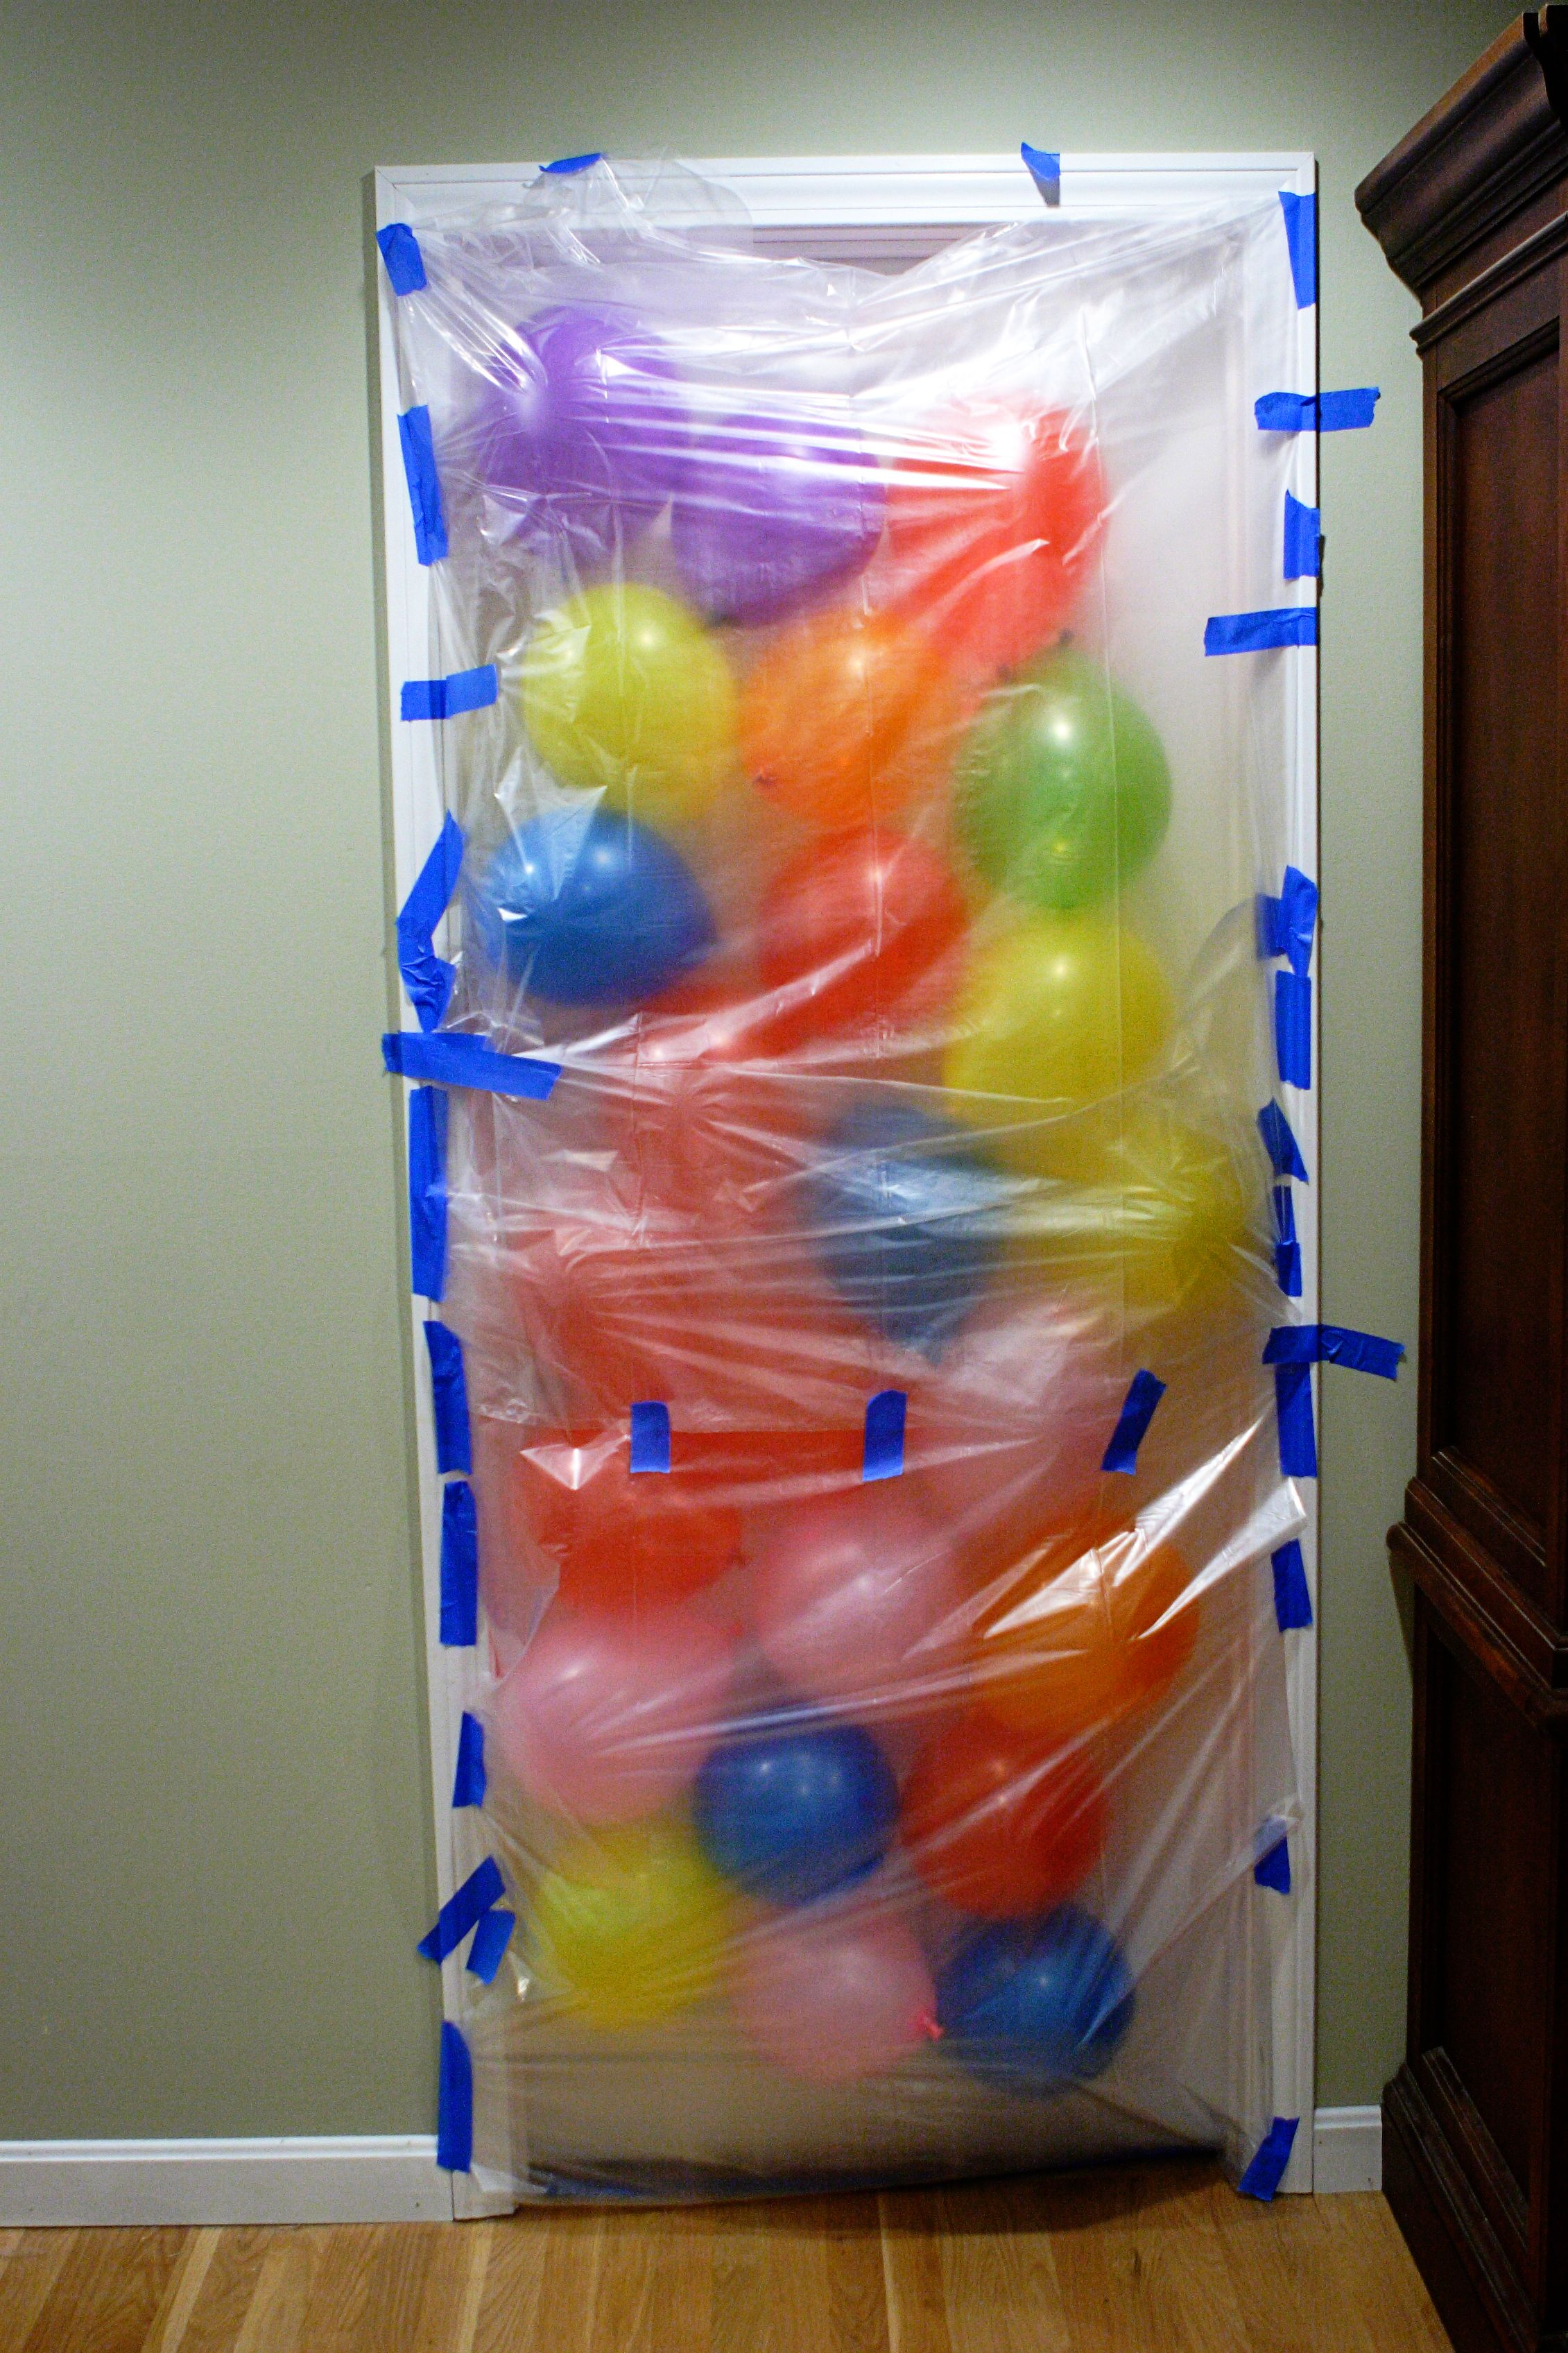 Two large garbage bags + painter's tape + balloons = balloon avalanche.  How awesome would this be to do the morning of a kids birthday!